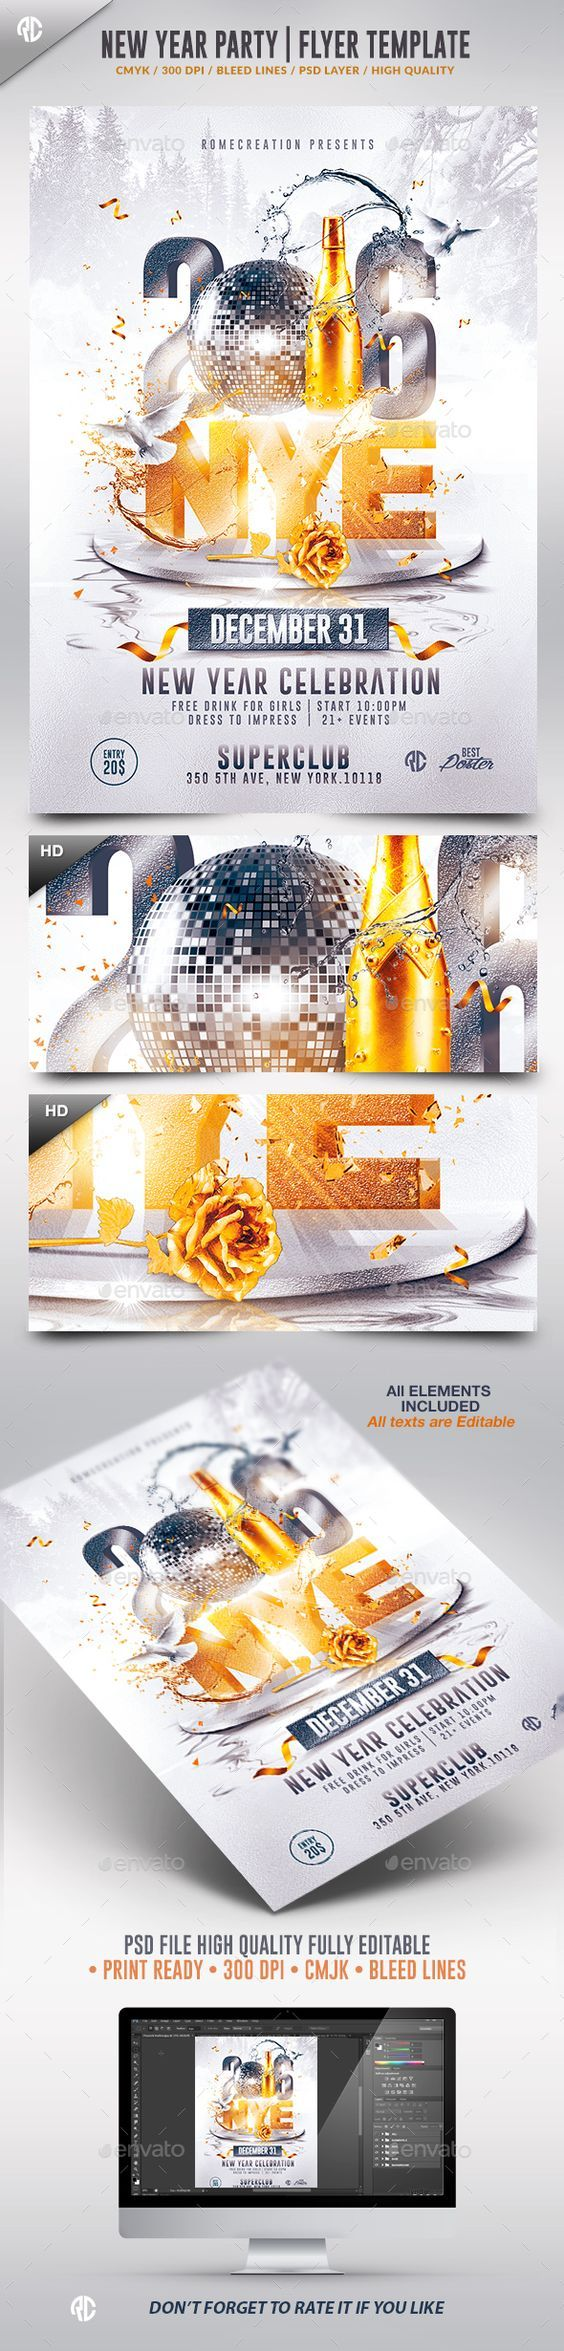 New Year  2016 Flyer Template PSD #design #nye Download: http://graphicriver.net/item/new-year-2016-nye-flyer-template/13504030?ref=ksioks: